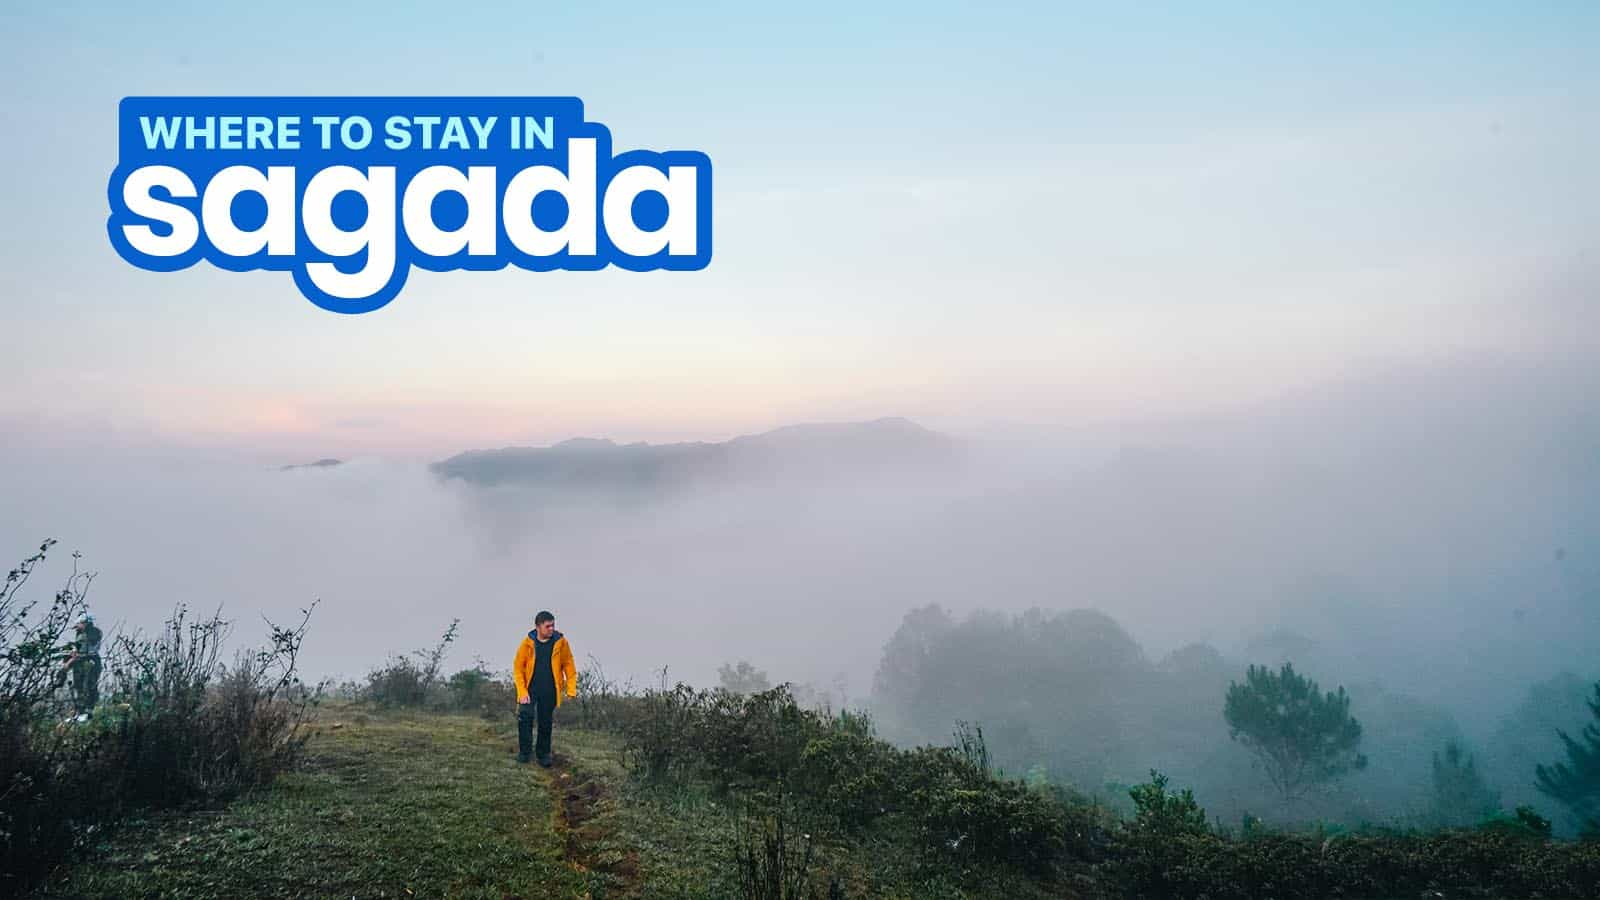 LIST OF ACCREDITED SAGADA HOTELS, HOSTELS & HOMESTAYS